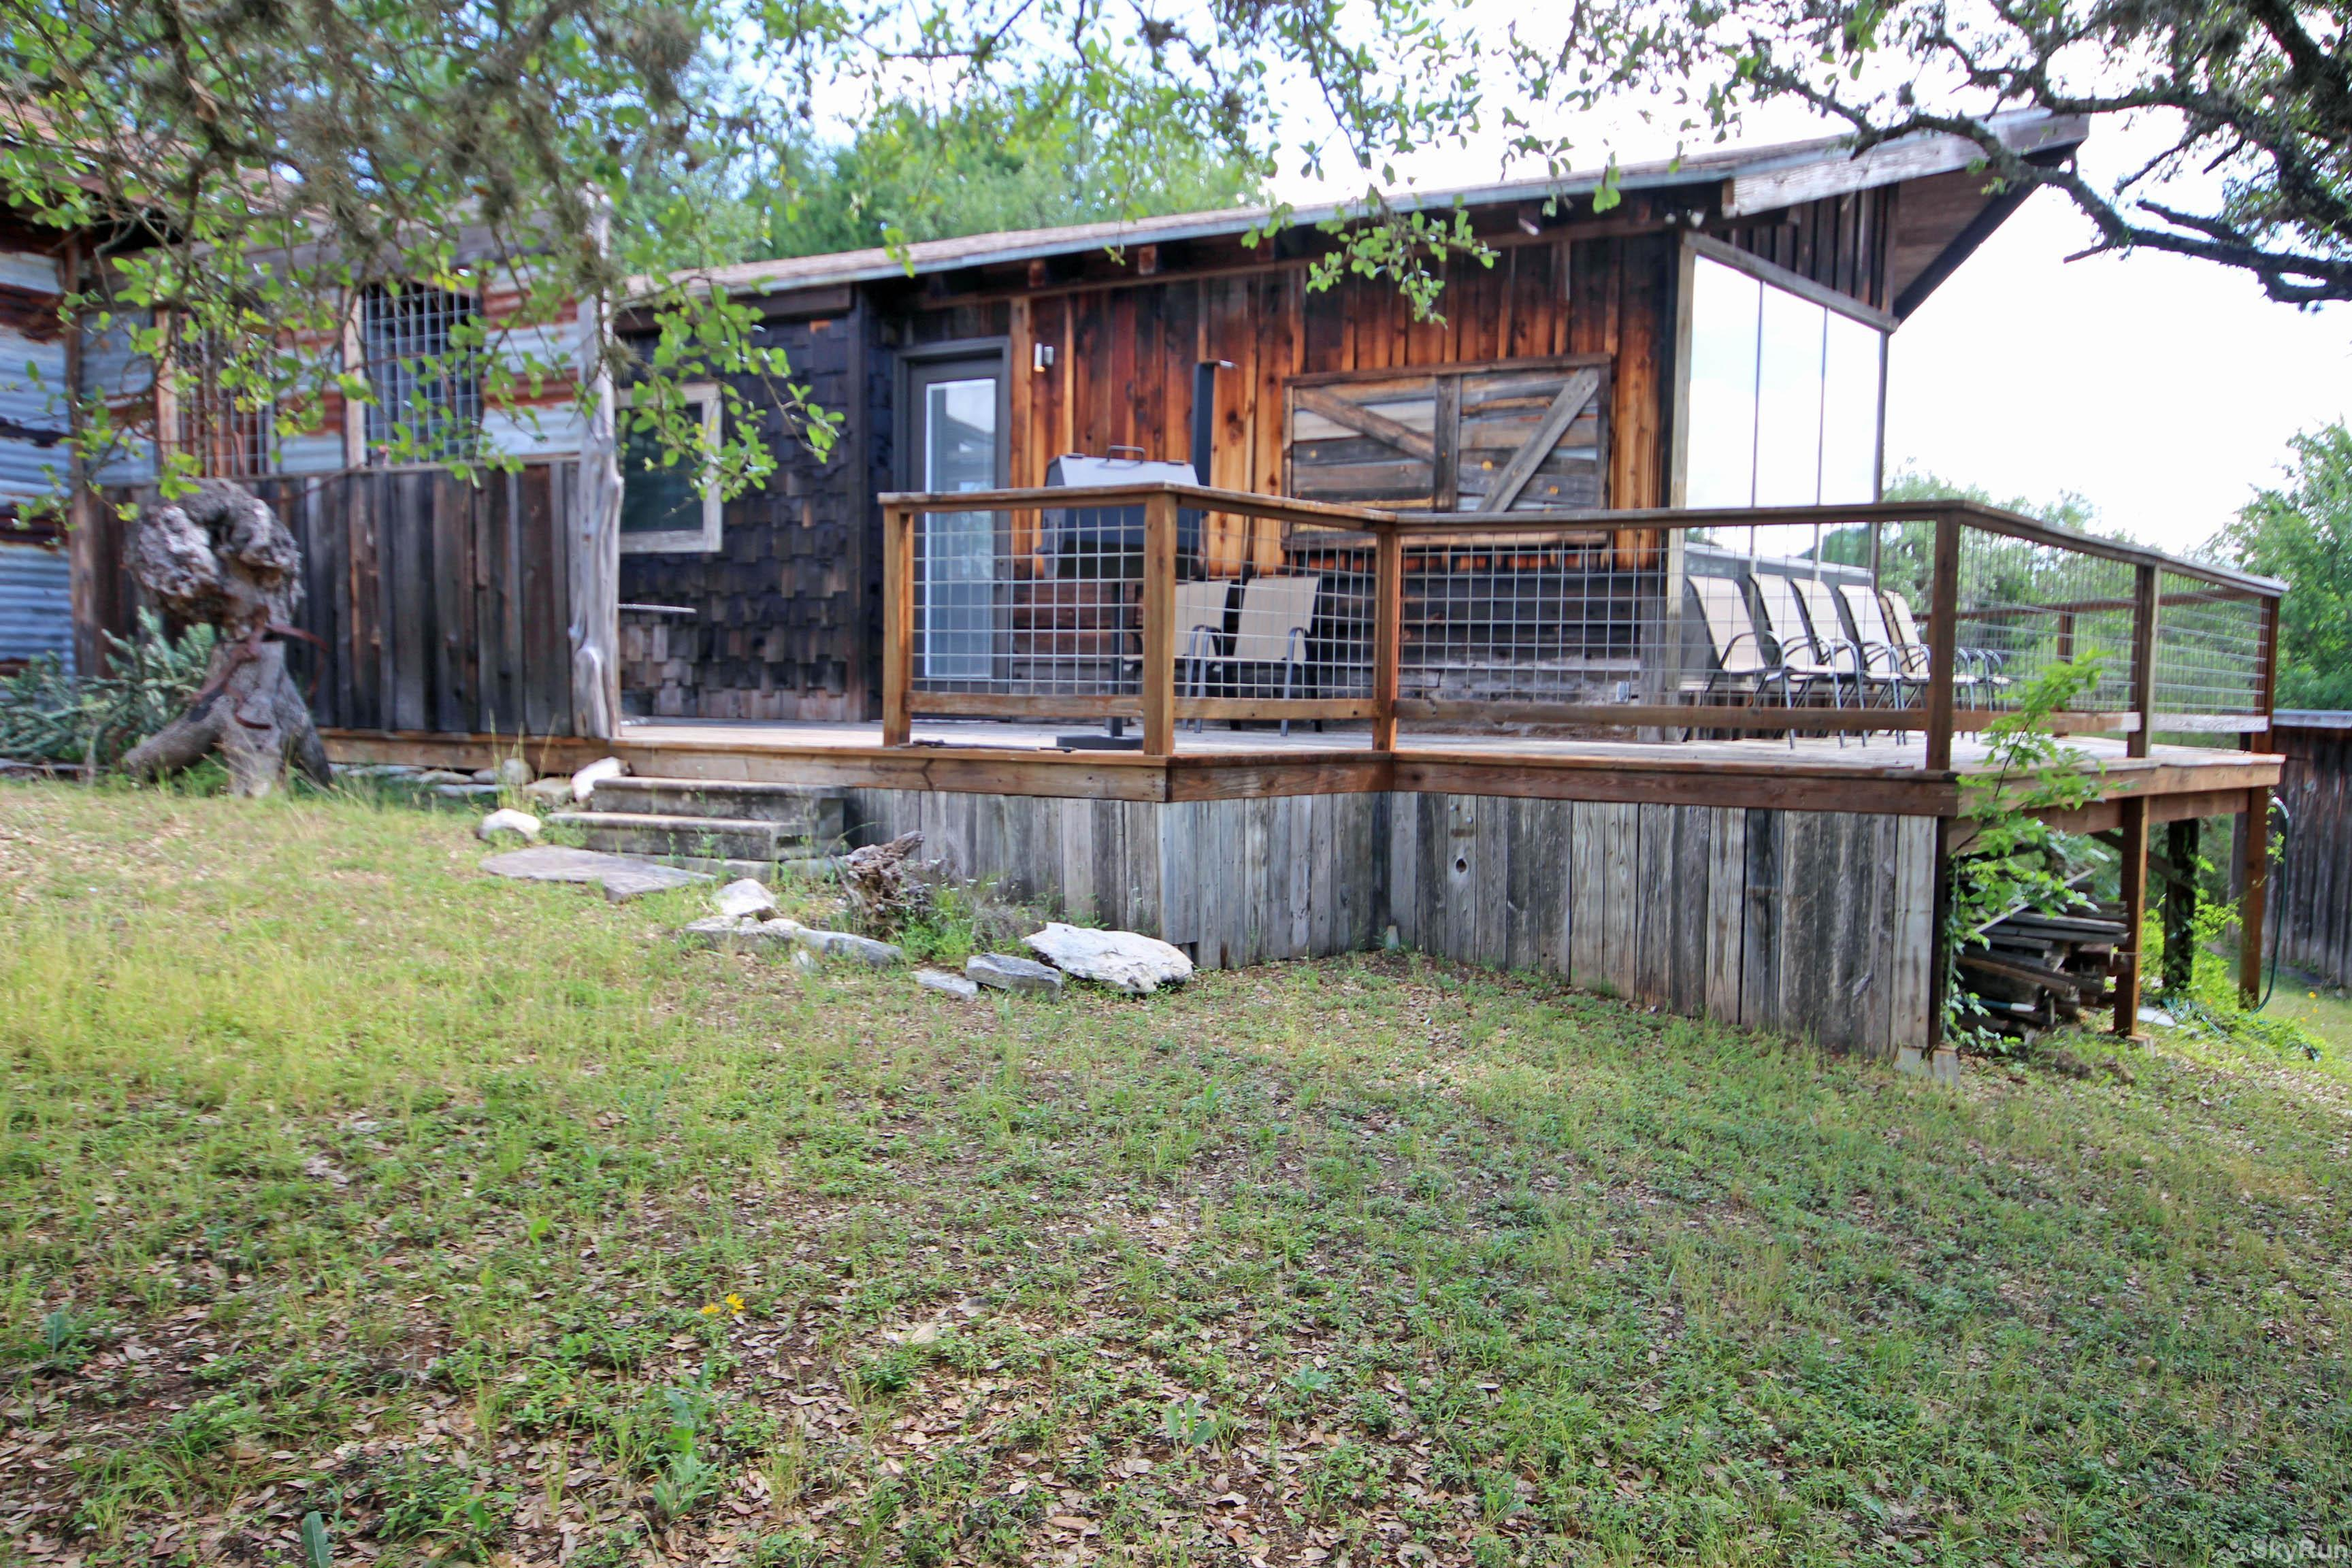 LUCKY GOAT HOUSE Back Porch with Guadalupe River View